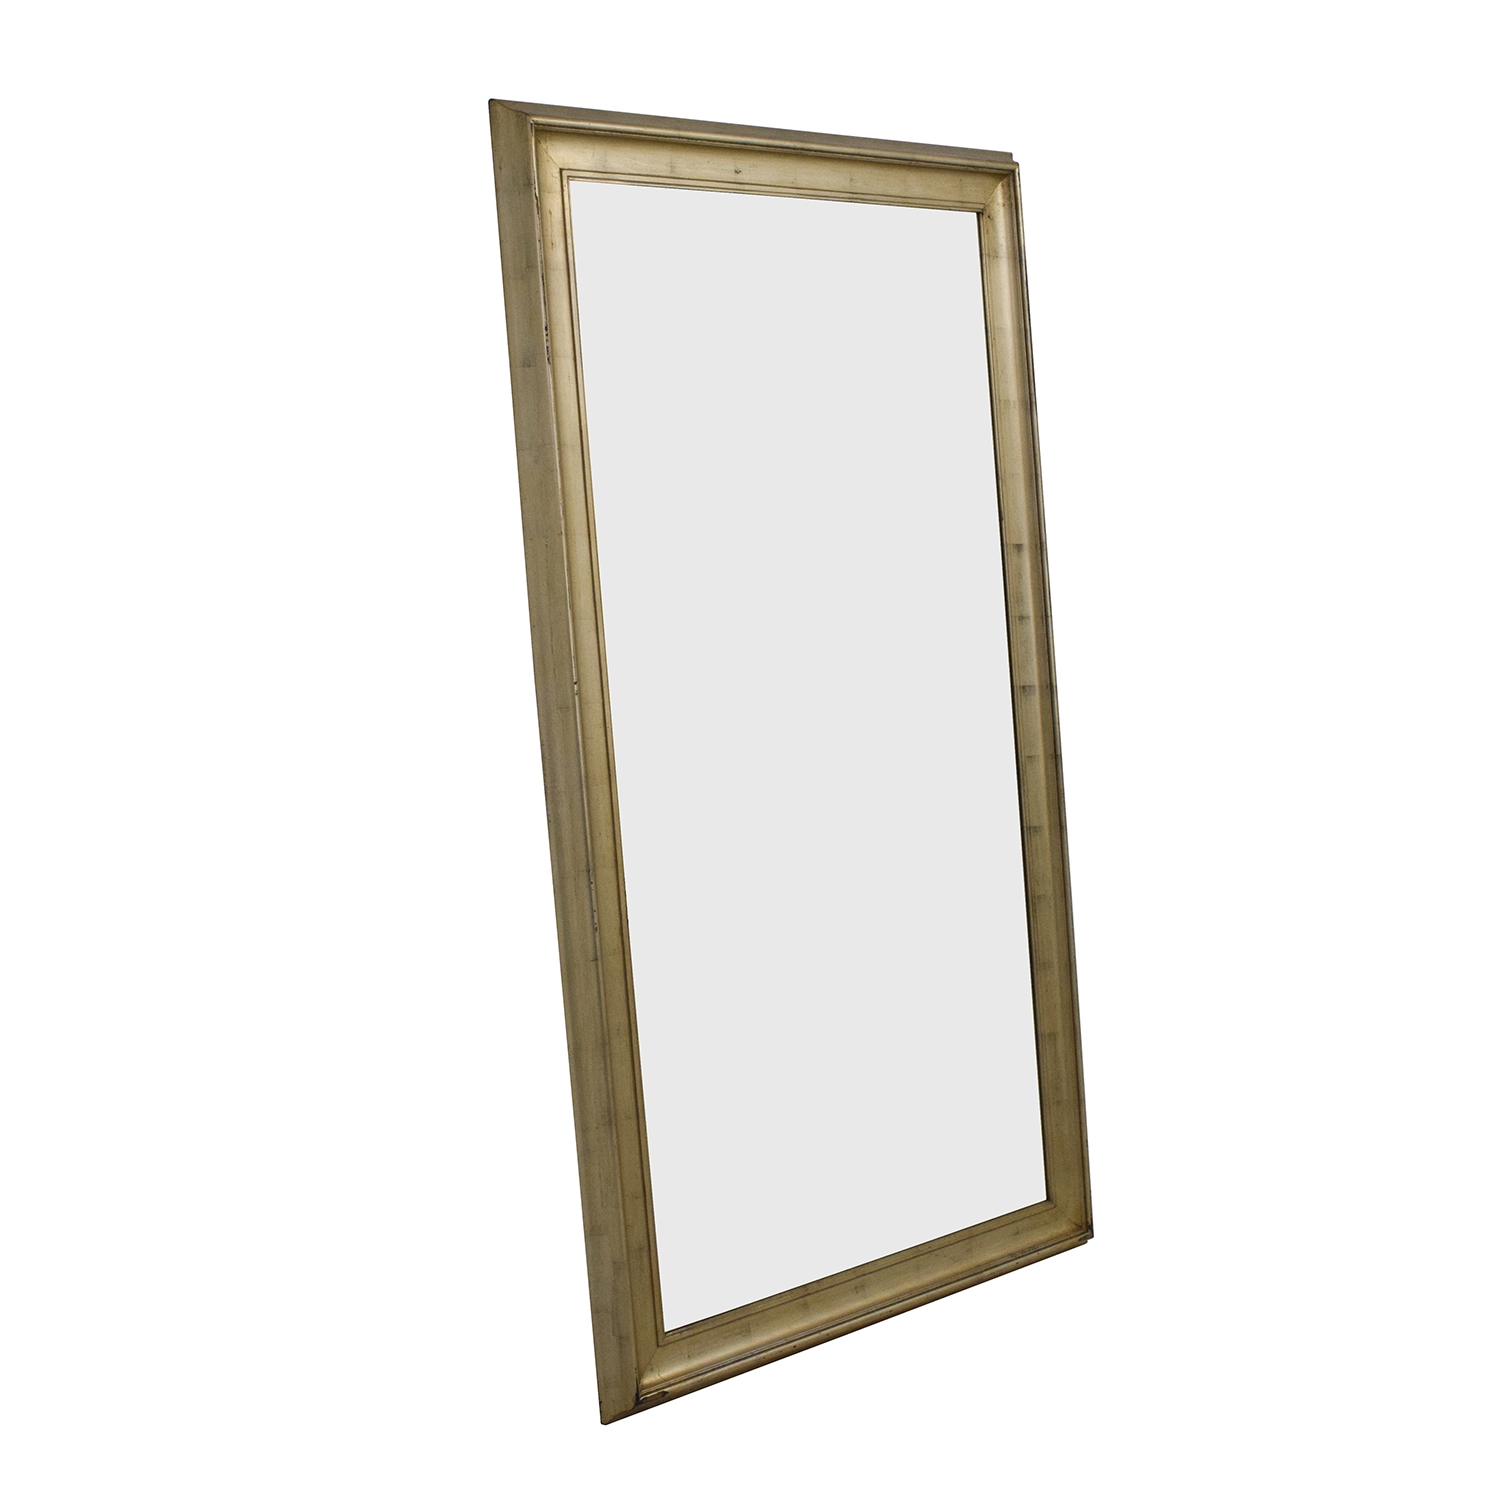 61 Off Standing Gold Framed Mirror Decor Regarding Gold Standing Mirror (View 13 of 15)